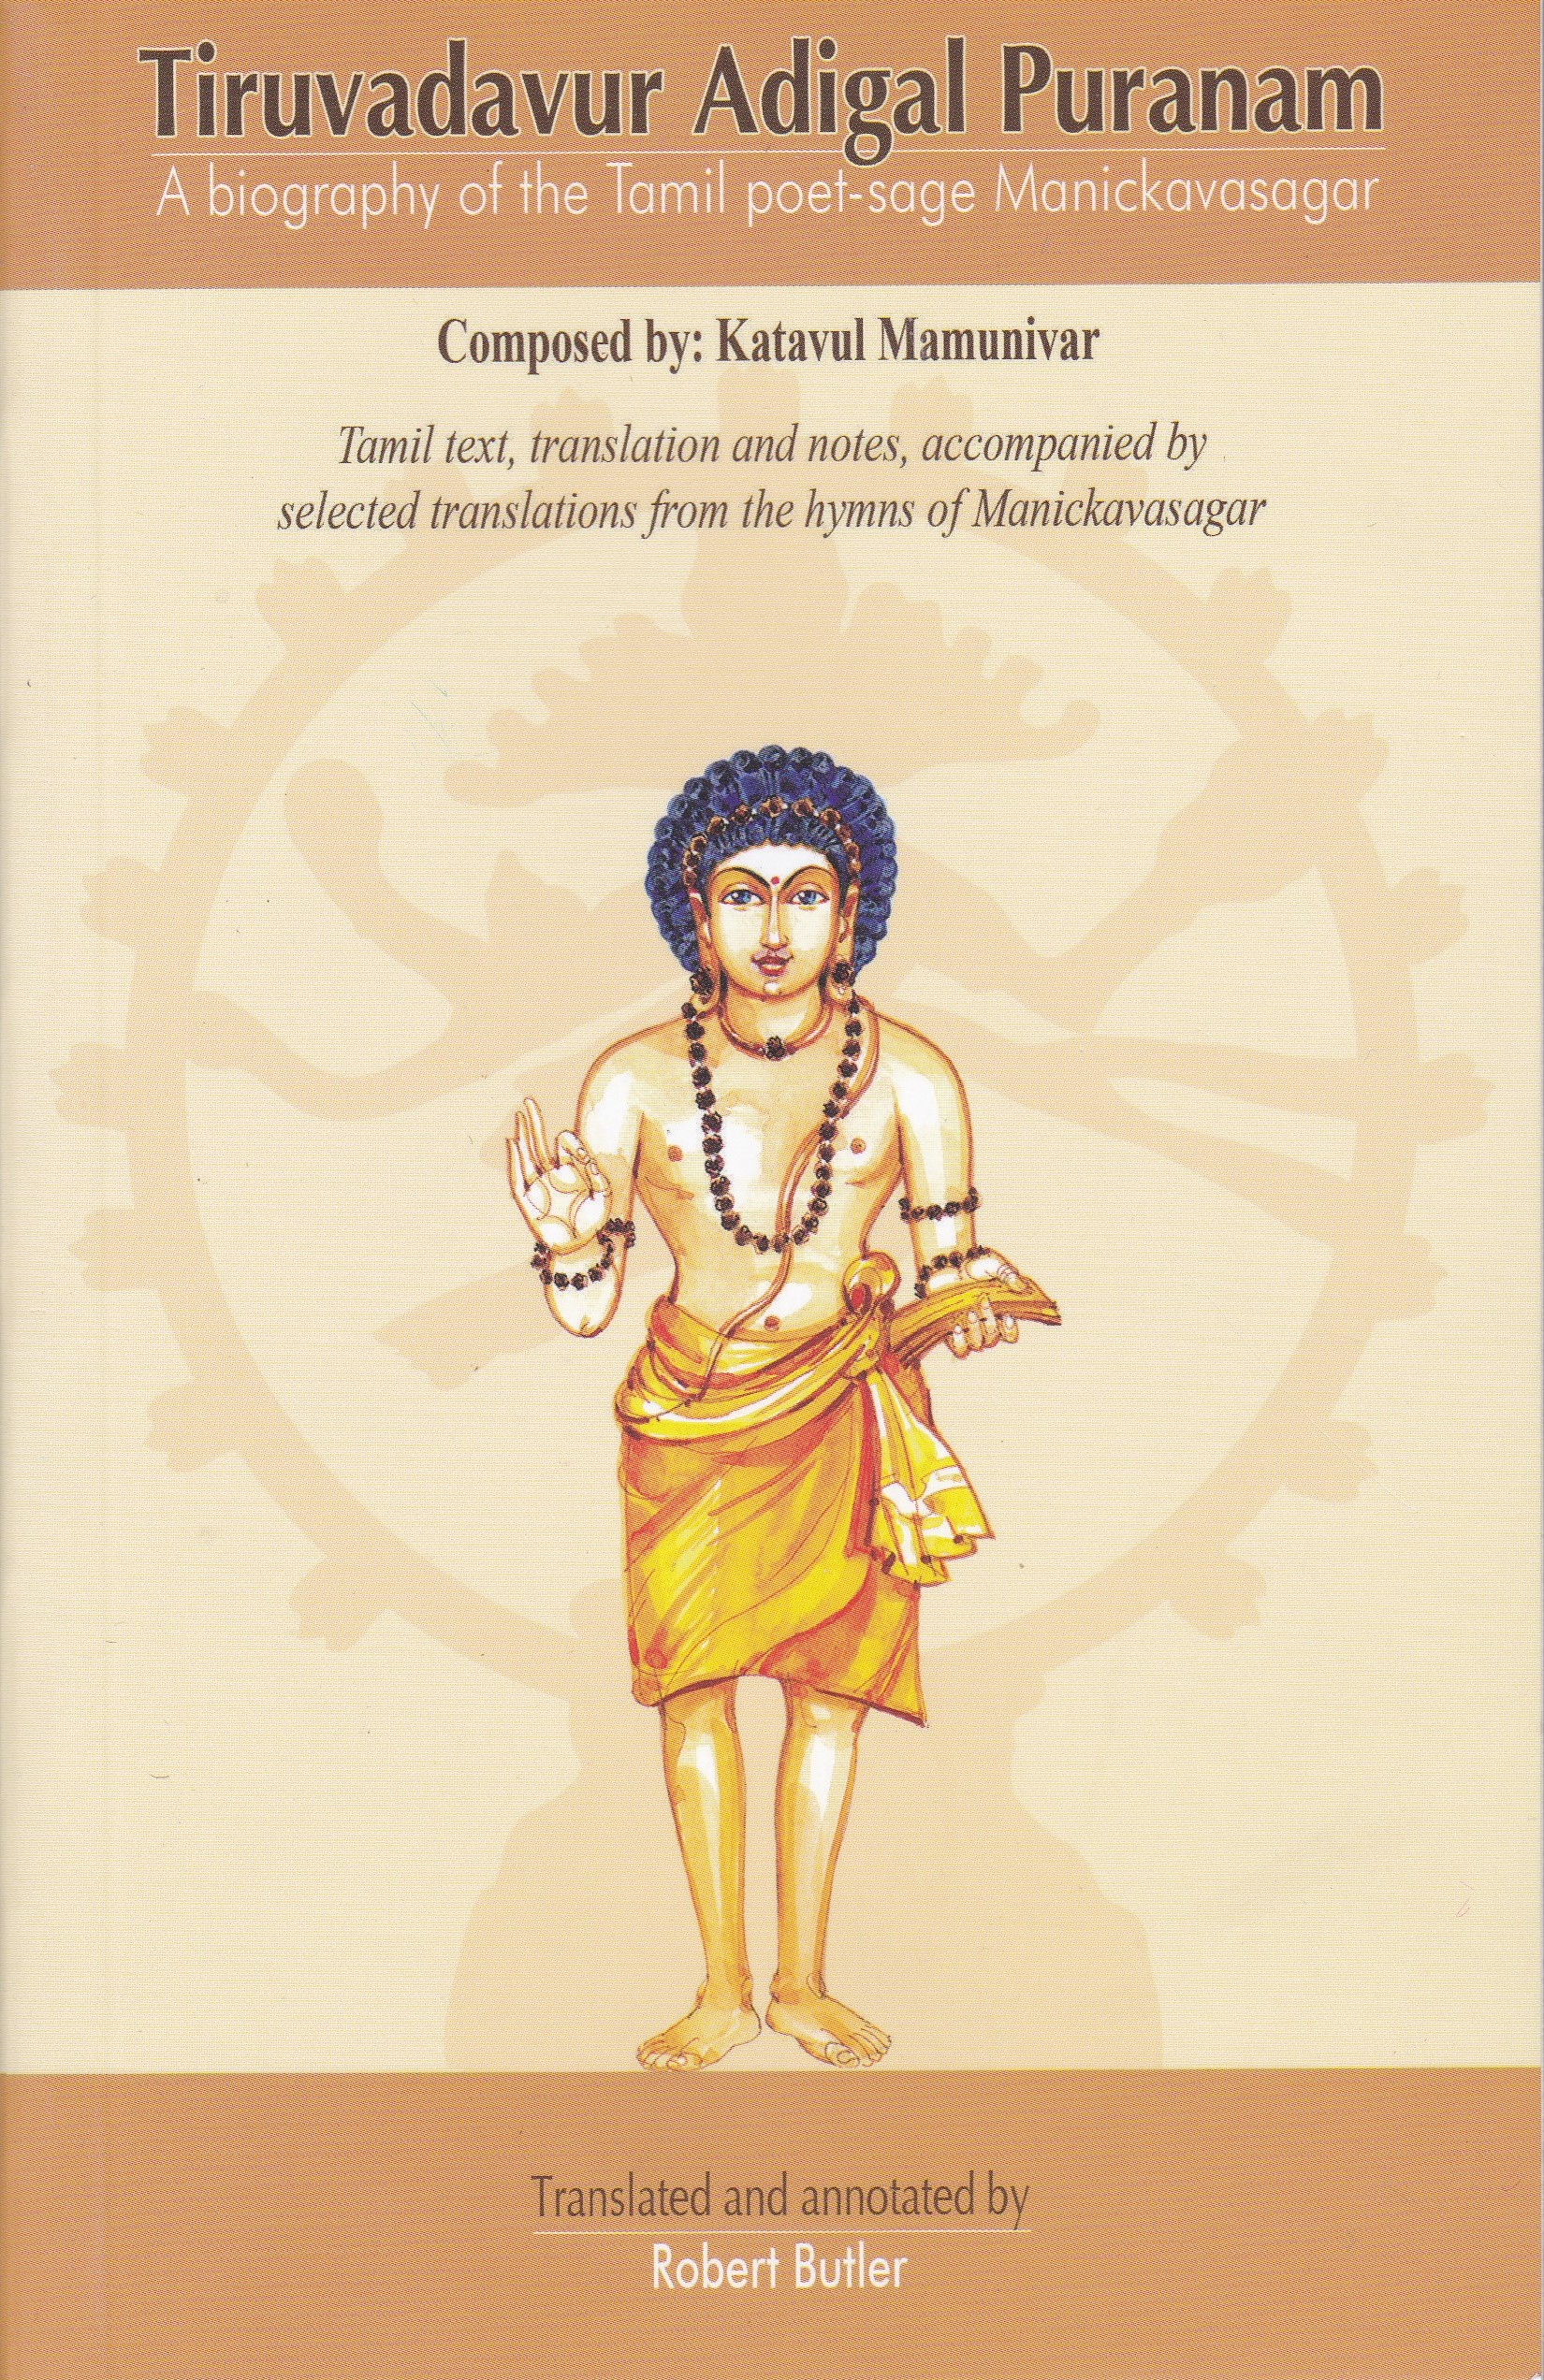 Biography of Manickavasagar